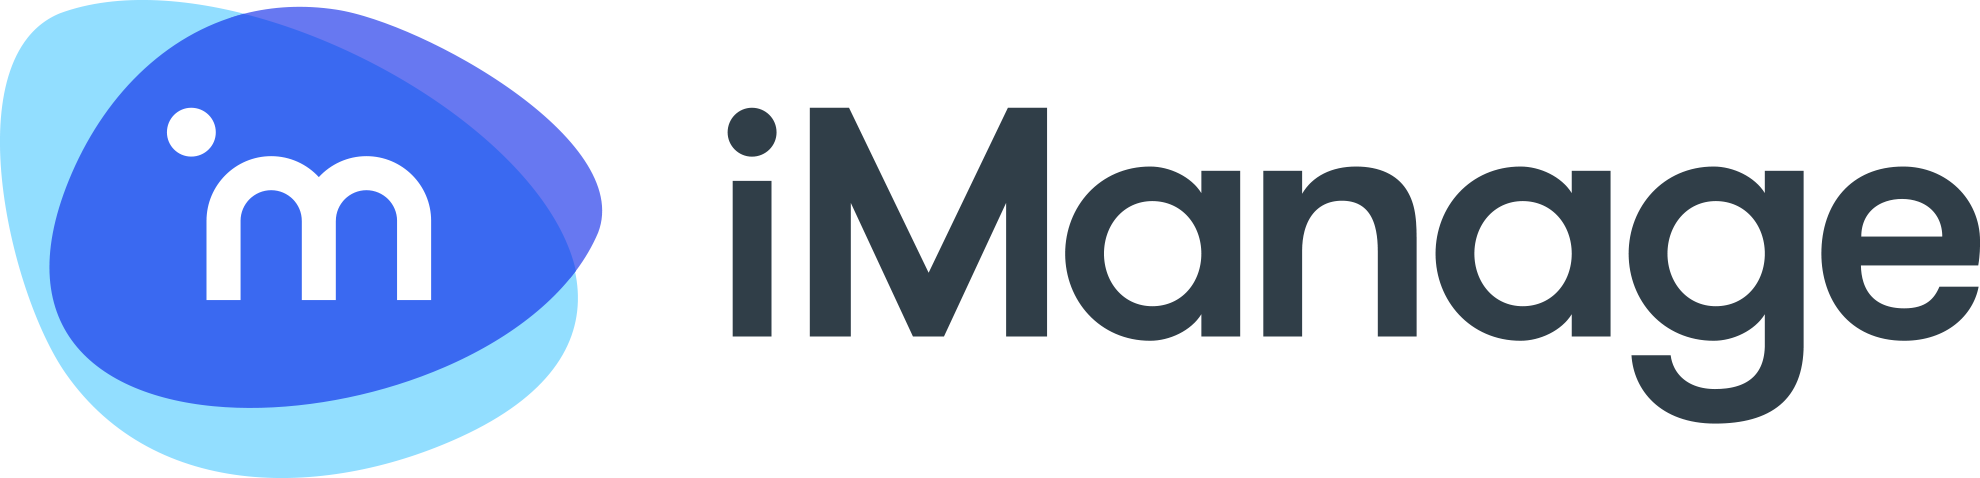 iManage-logo-color-white-horizontal